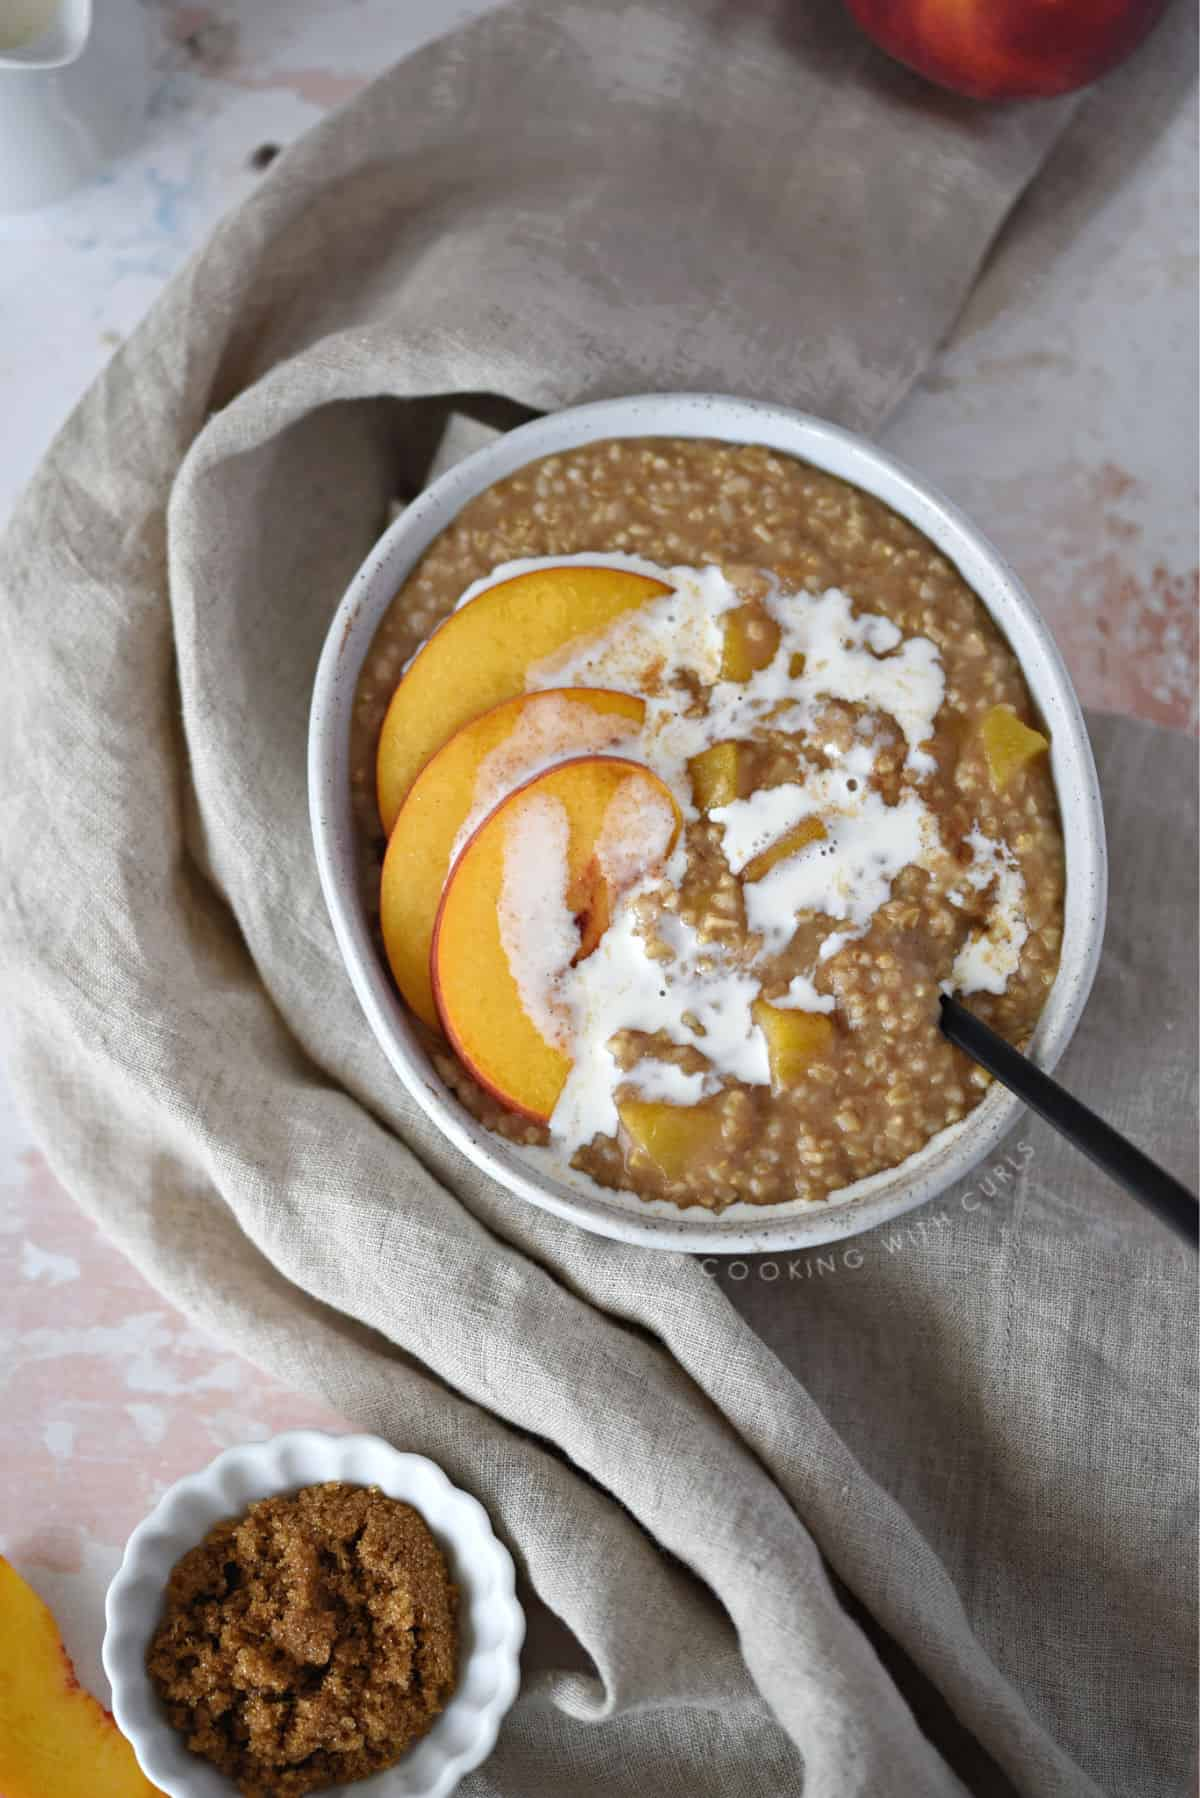 looking down on a bowl of steel cut oats topped with peach slices and cream, with a small bowl of brown sugar in the bottom left corner and the edge of a full peach in the upper right corner.